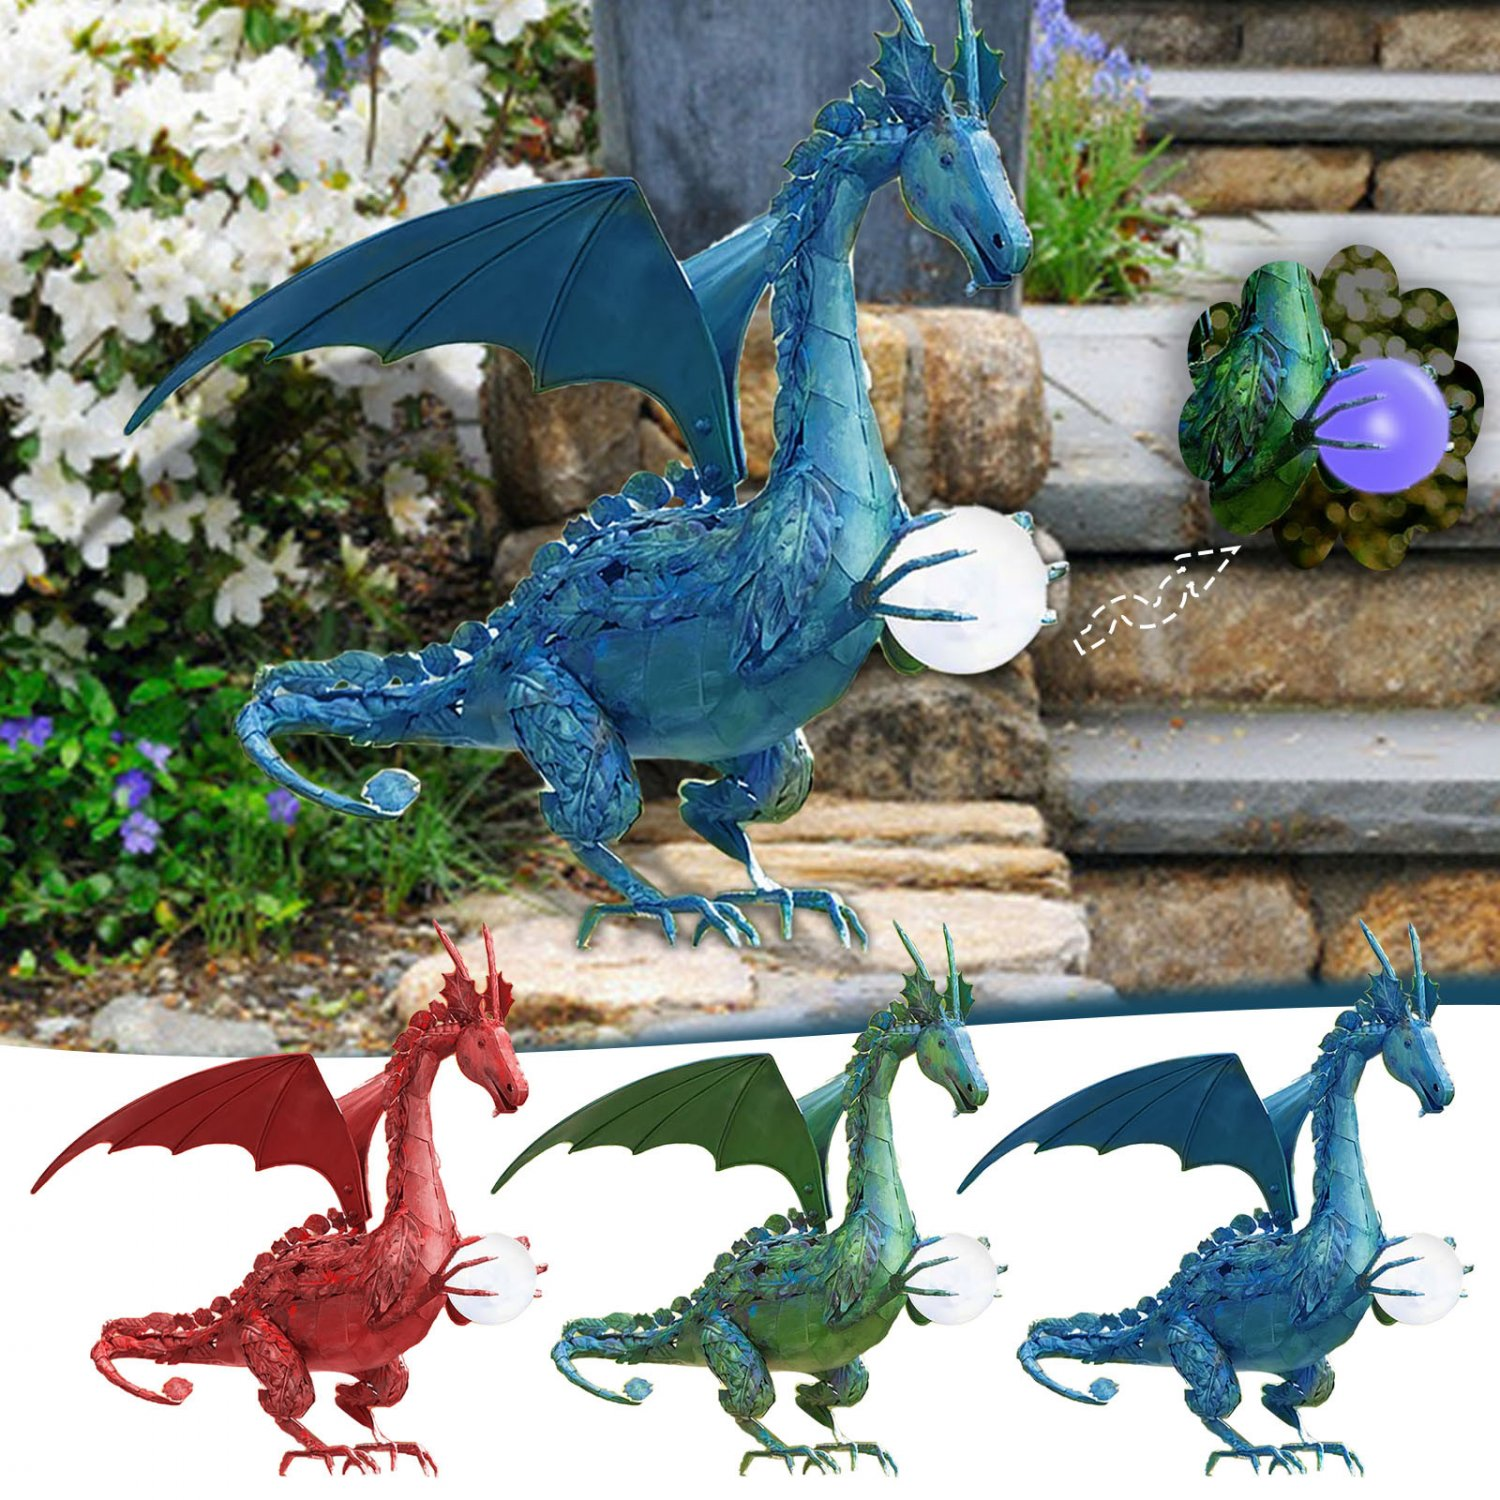 Flying Dragon Holding A Ball Statue For Garden Decorations